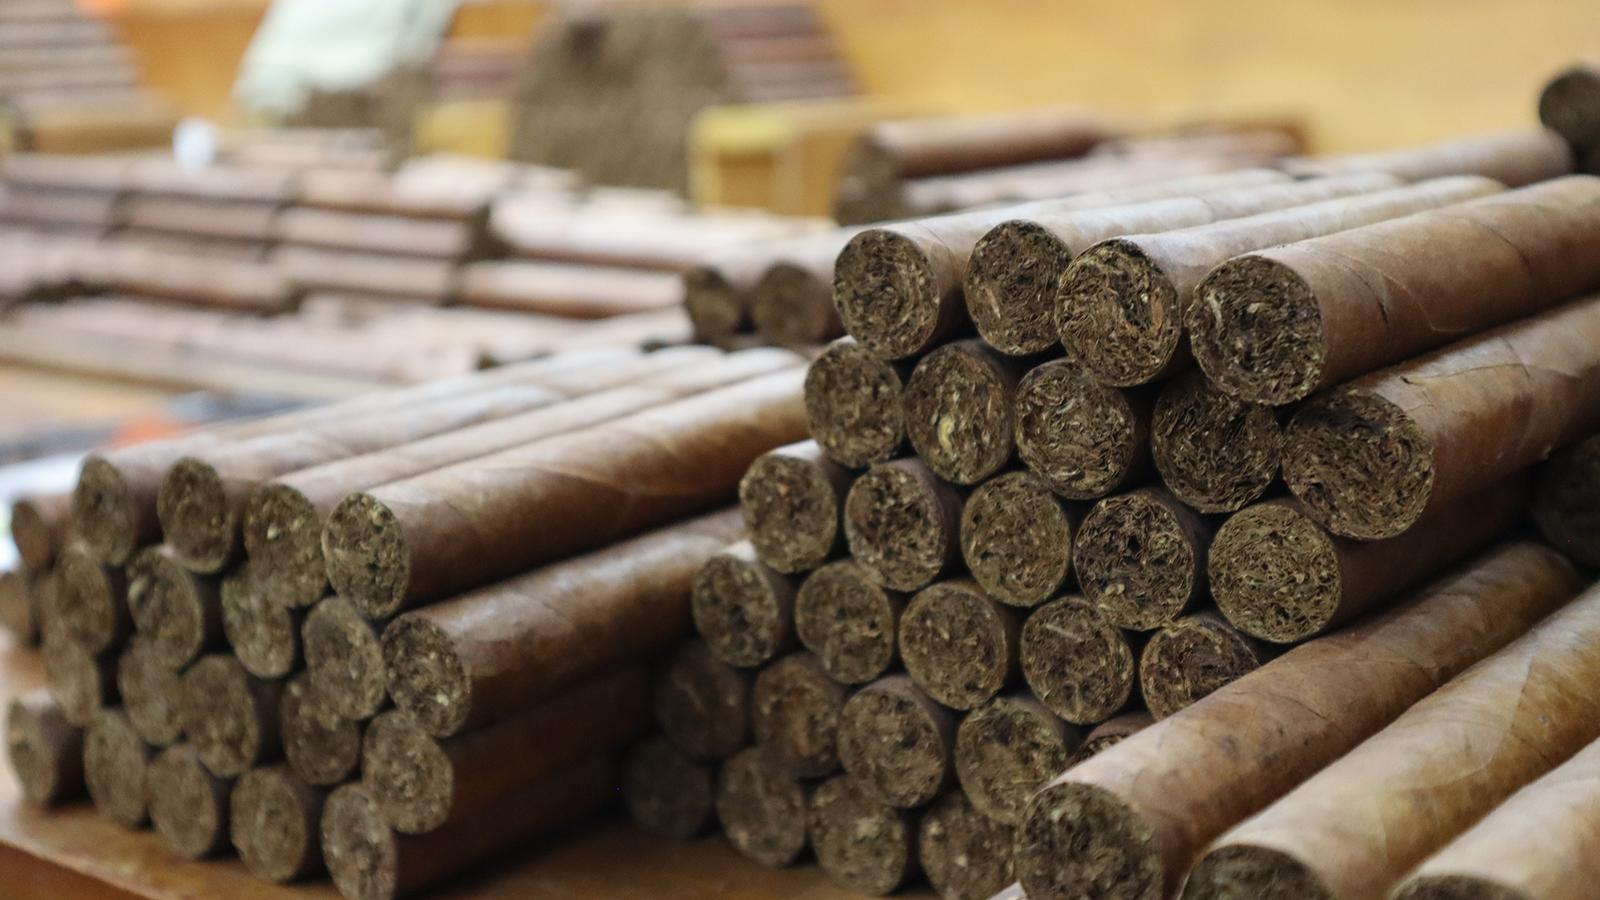 Bunch of cigars